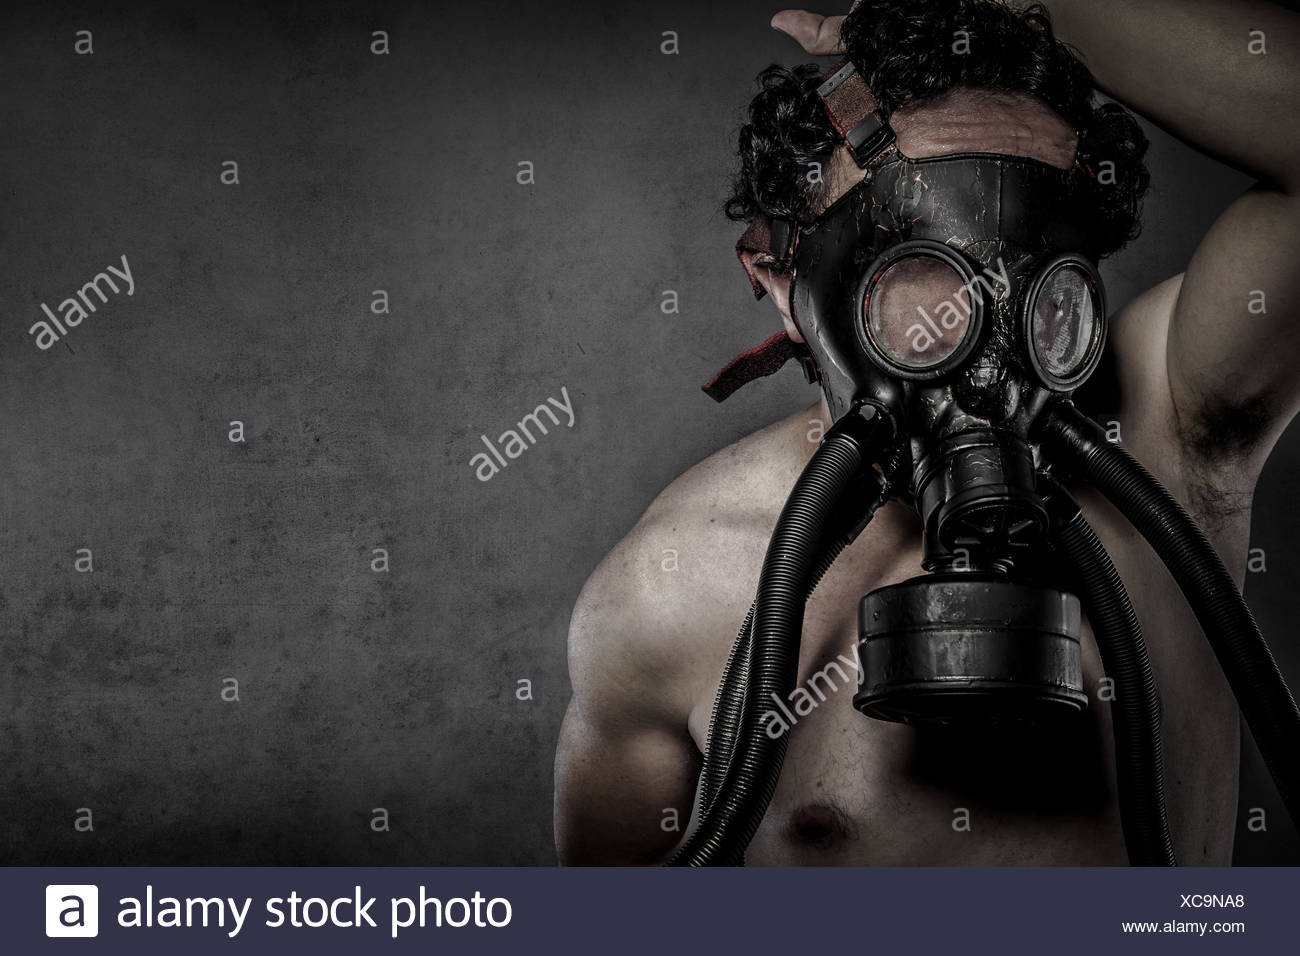 Pollution, nuclear disaster, man with gas mask, protection Stock Photo